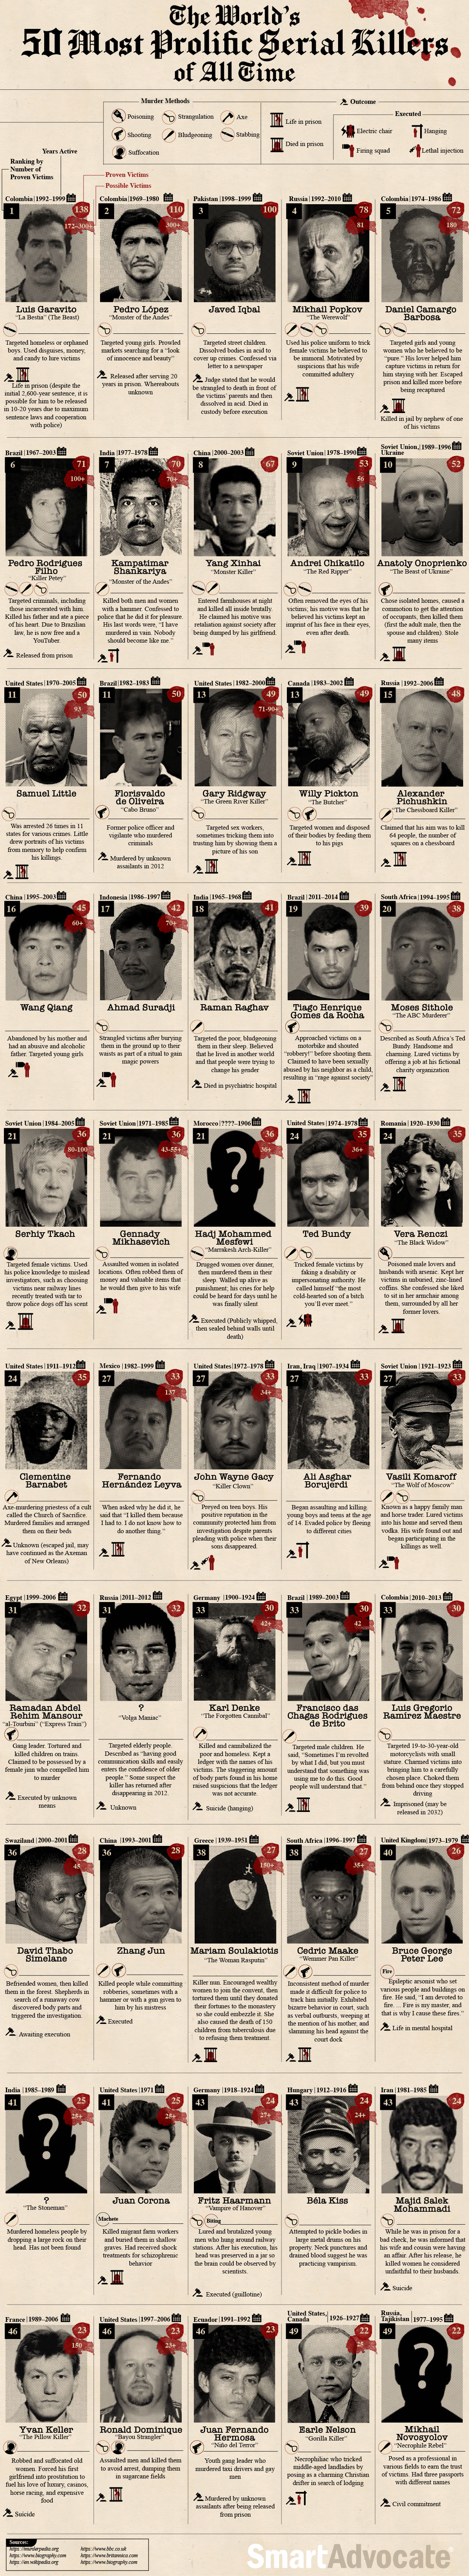 50 Of The World's Most Notorious Serial Killers - Infographic